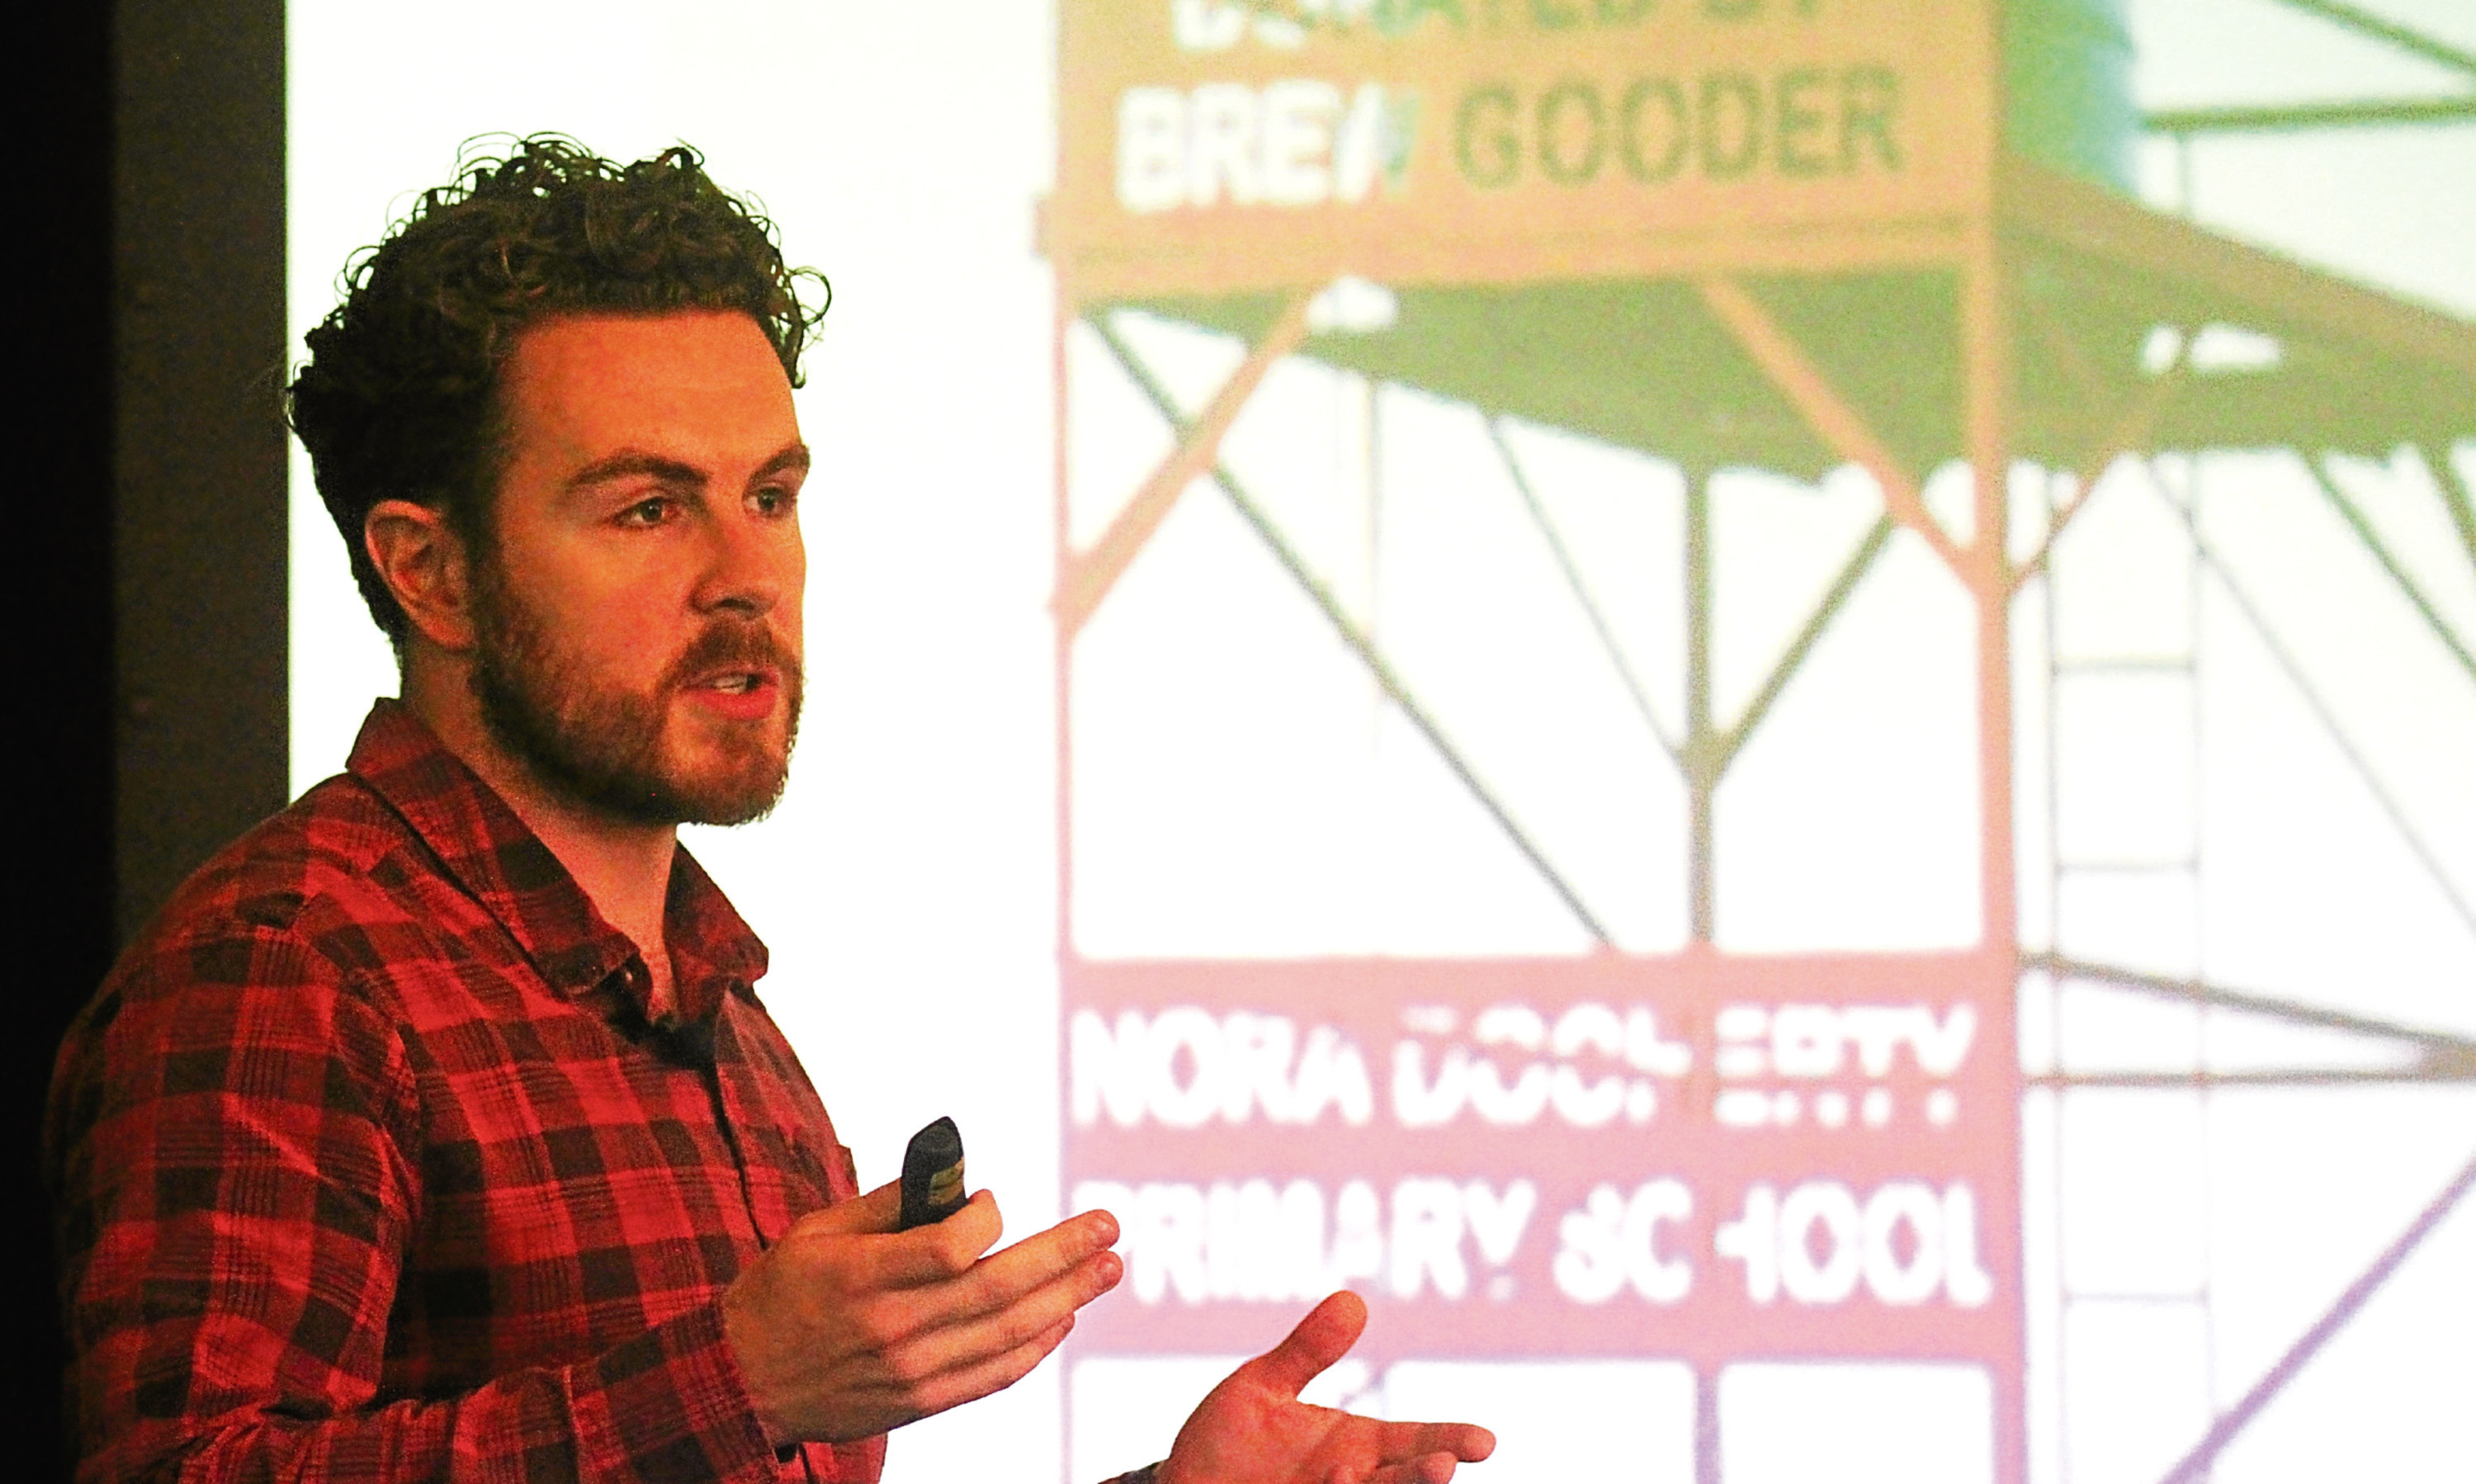 Alan Mahon of Brewgooder speaking at the business lunch